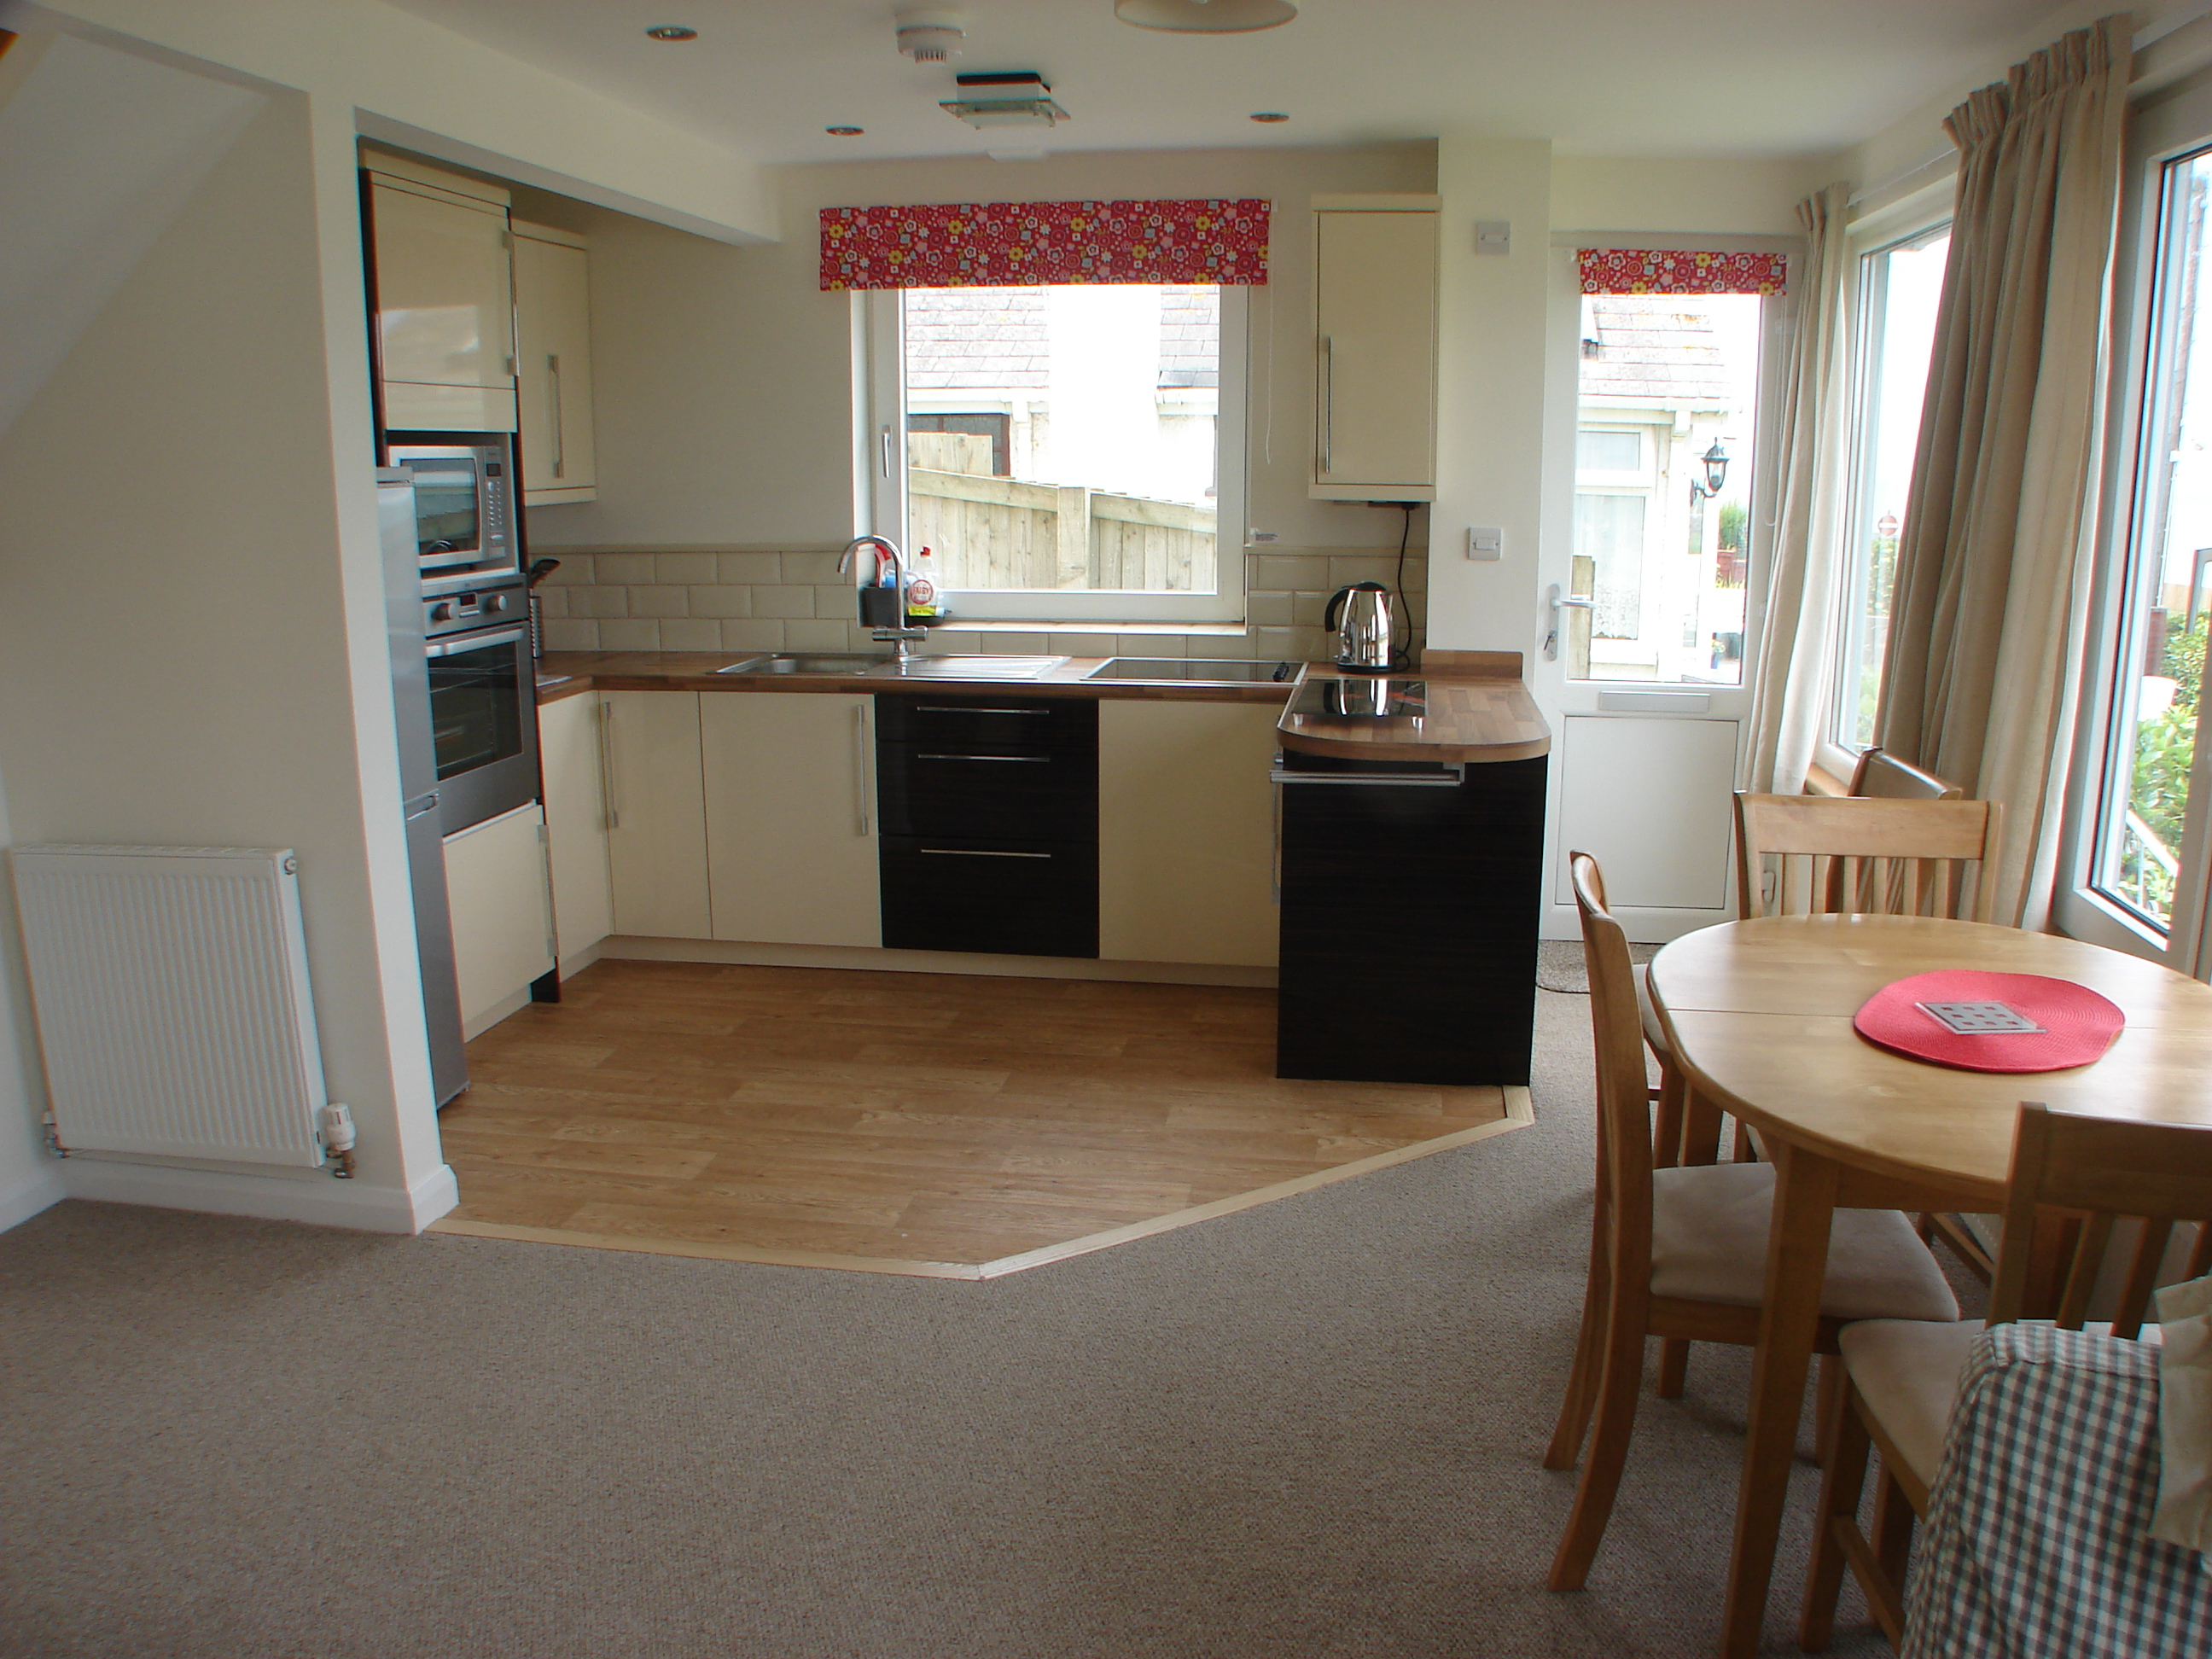 Polzeath Chalet Kitchen